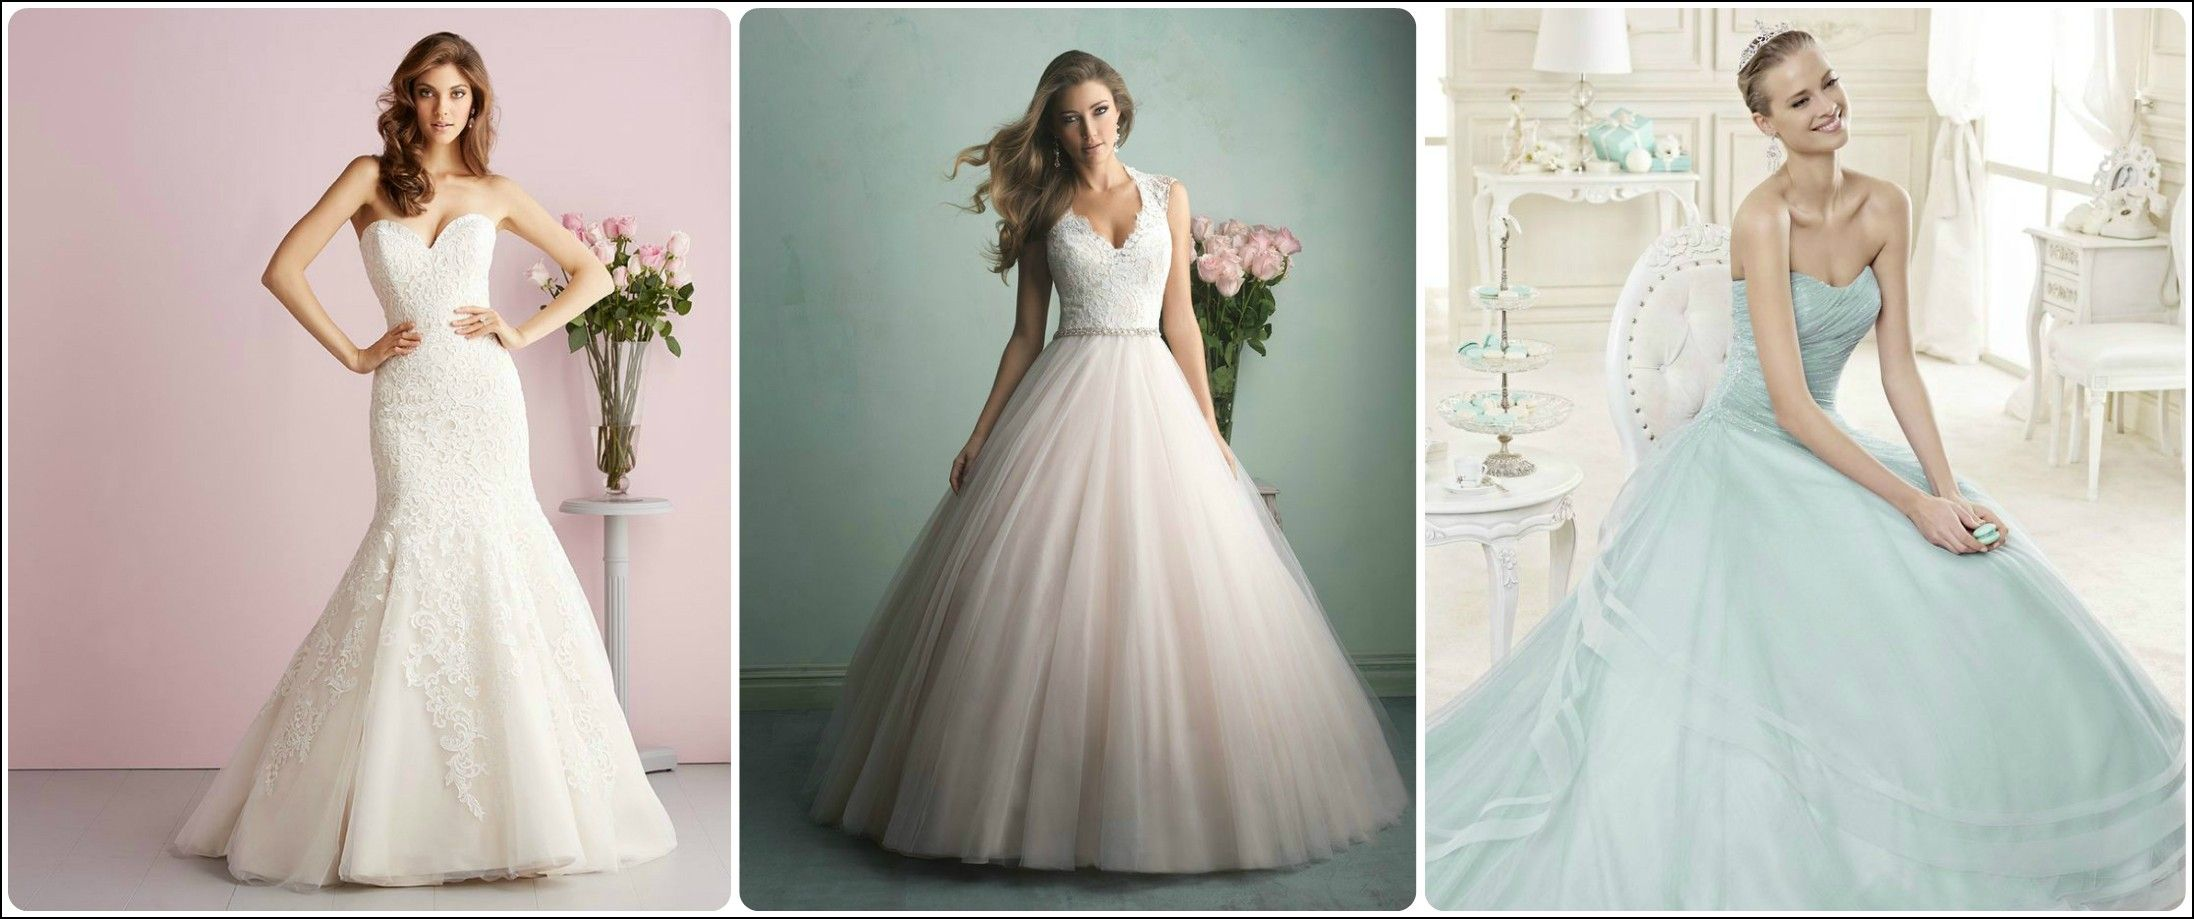 Out Of the Box Wedding Dresses | Wedding Ideas | Pinterest ...